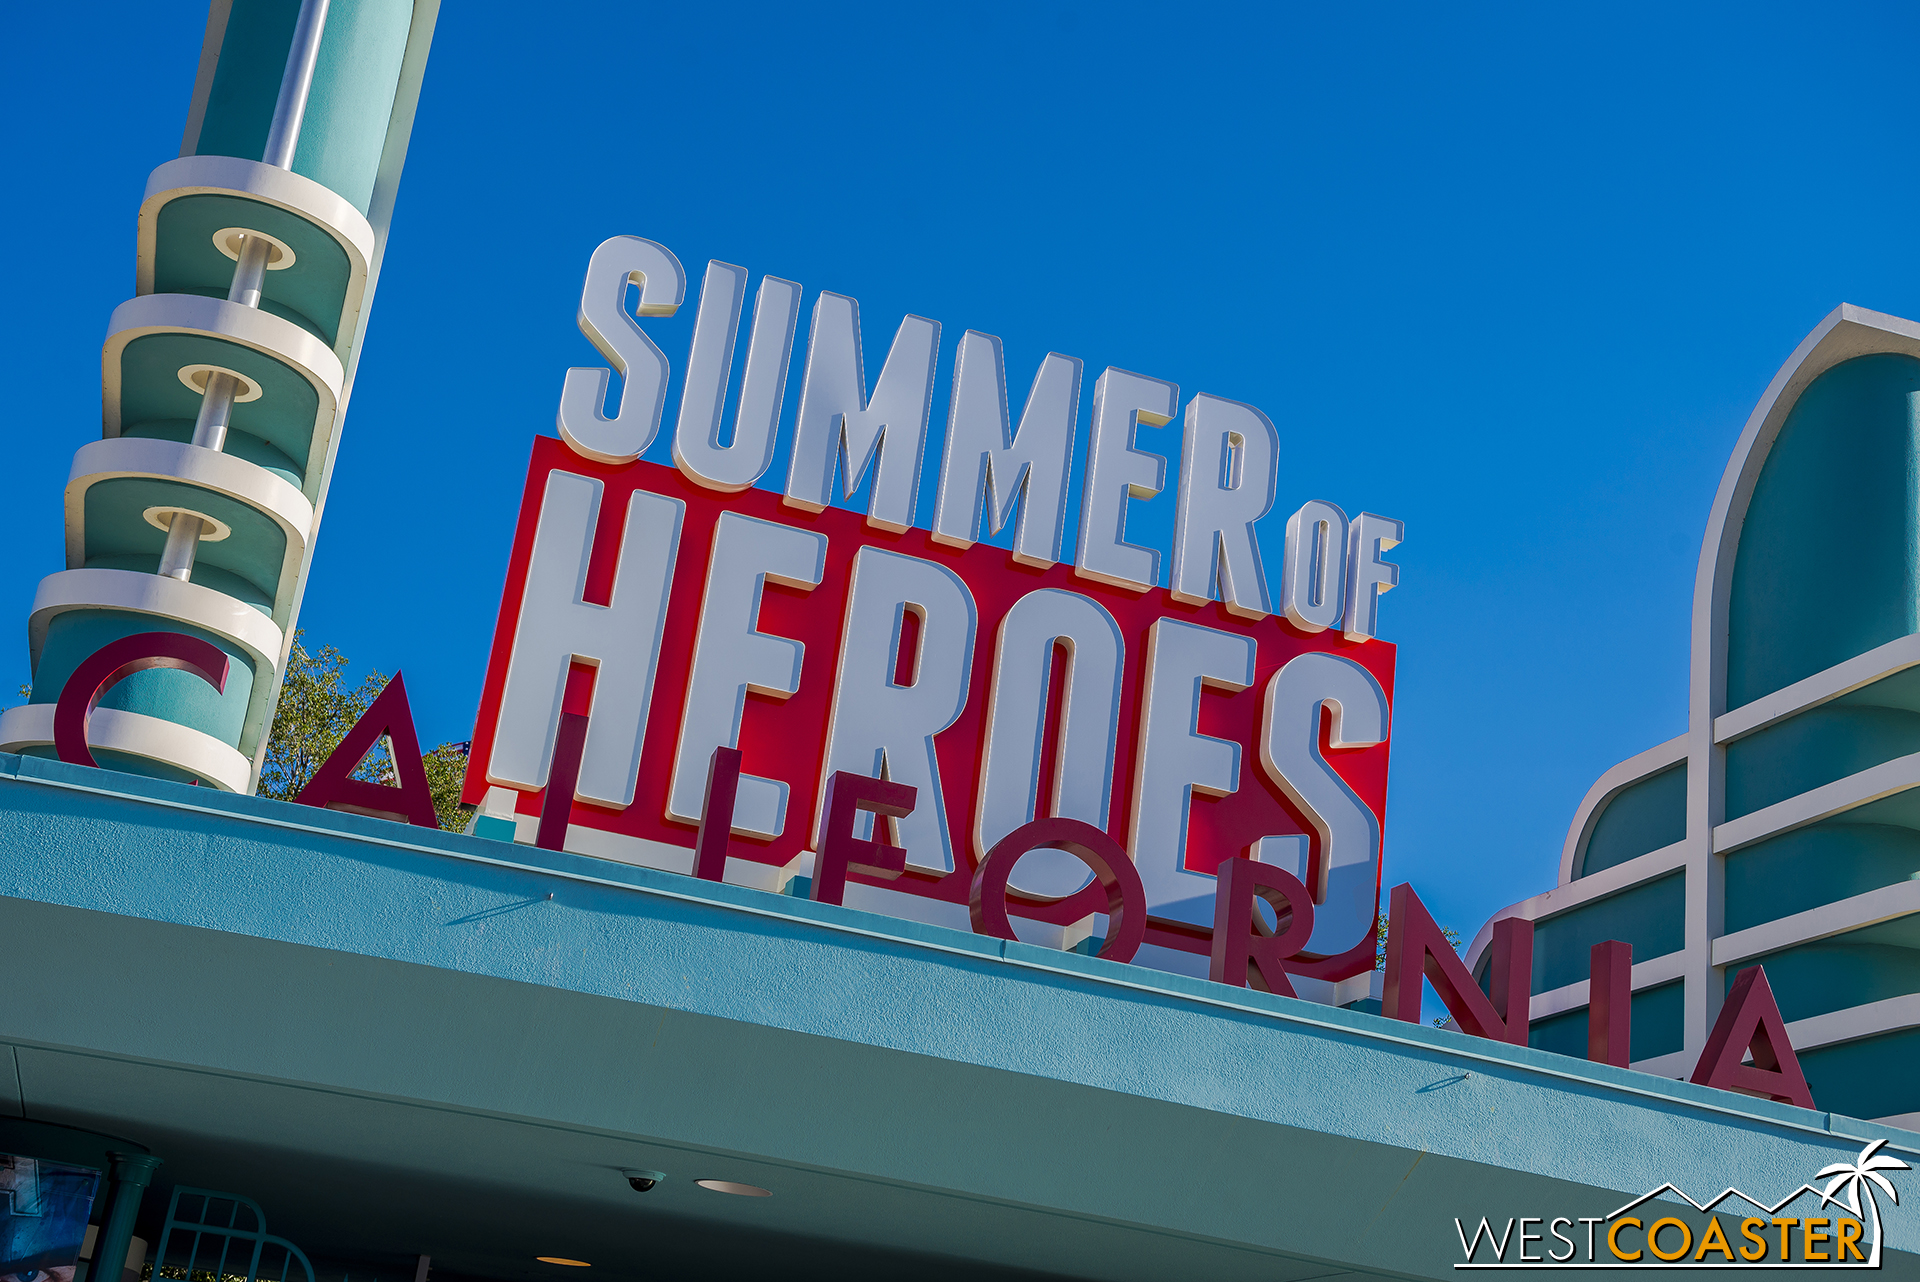 Ignoring the possibly intentionally silly tagline, this year's summer motif will give guests exposure to the Marble superheroes made famous on the big screen.